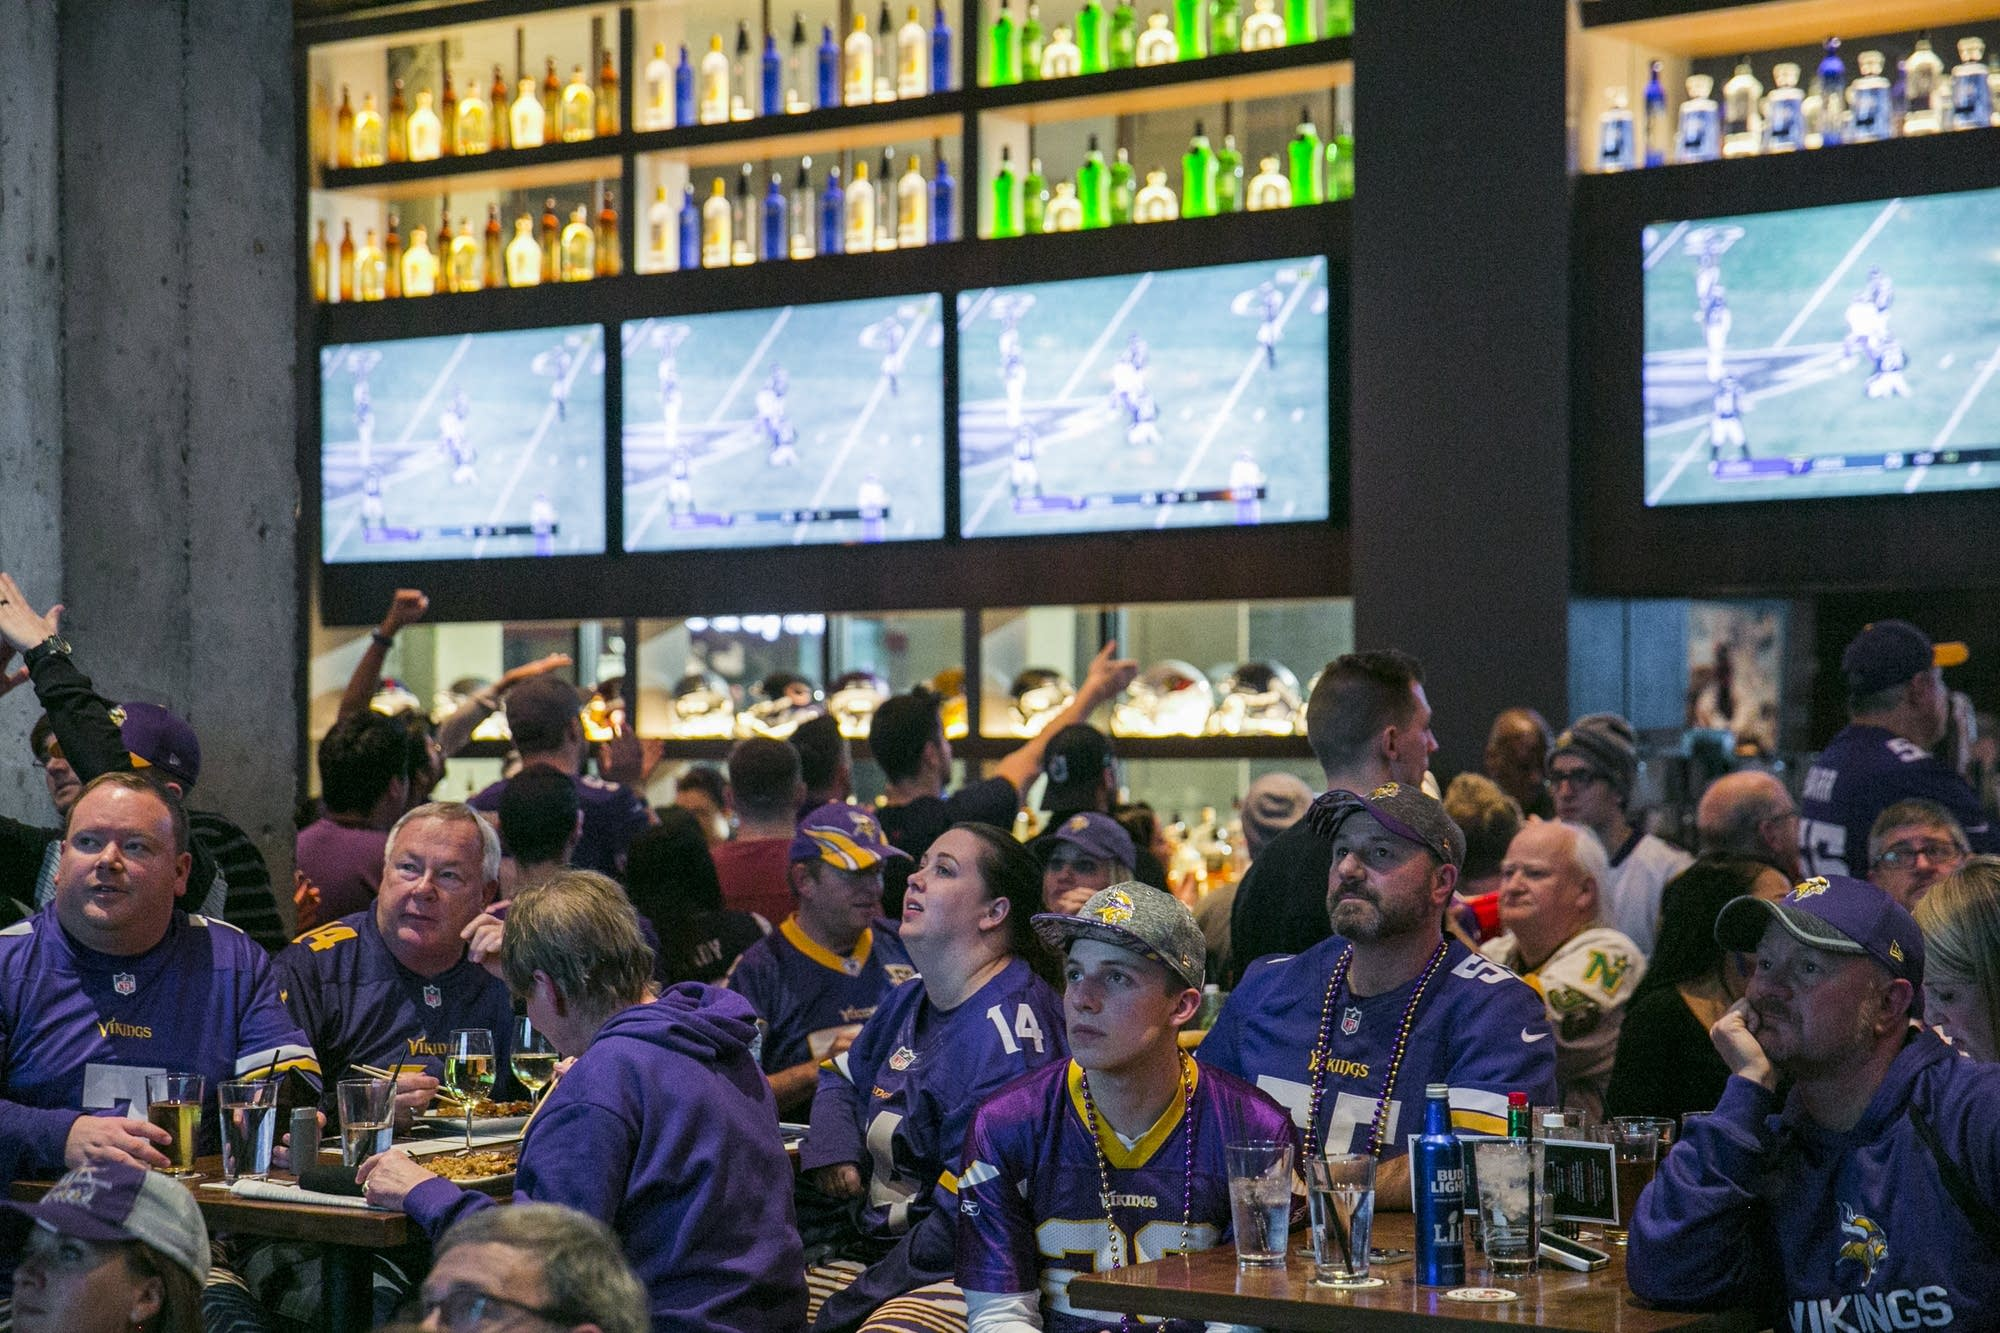 Vikings fans pensively watch the 2nd quarter of the NFC championship game.